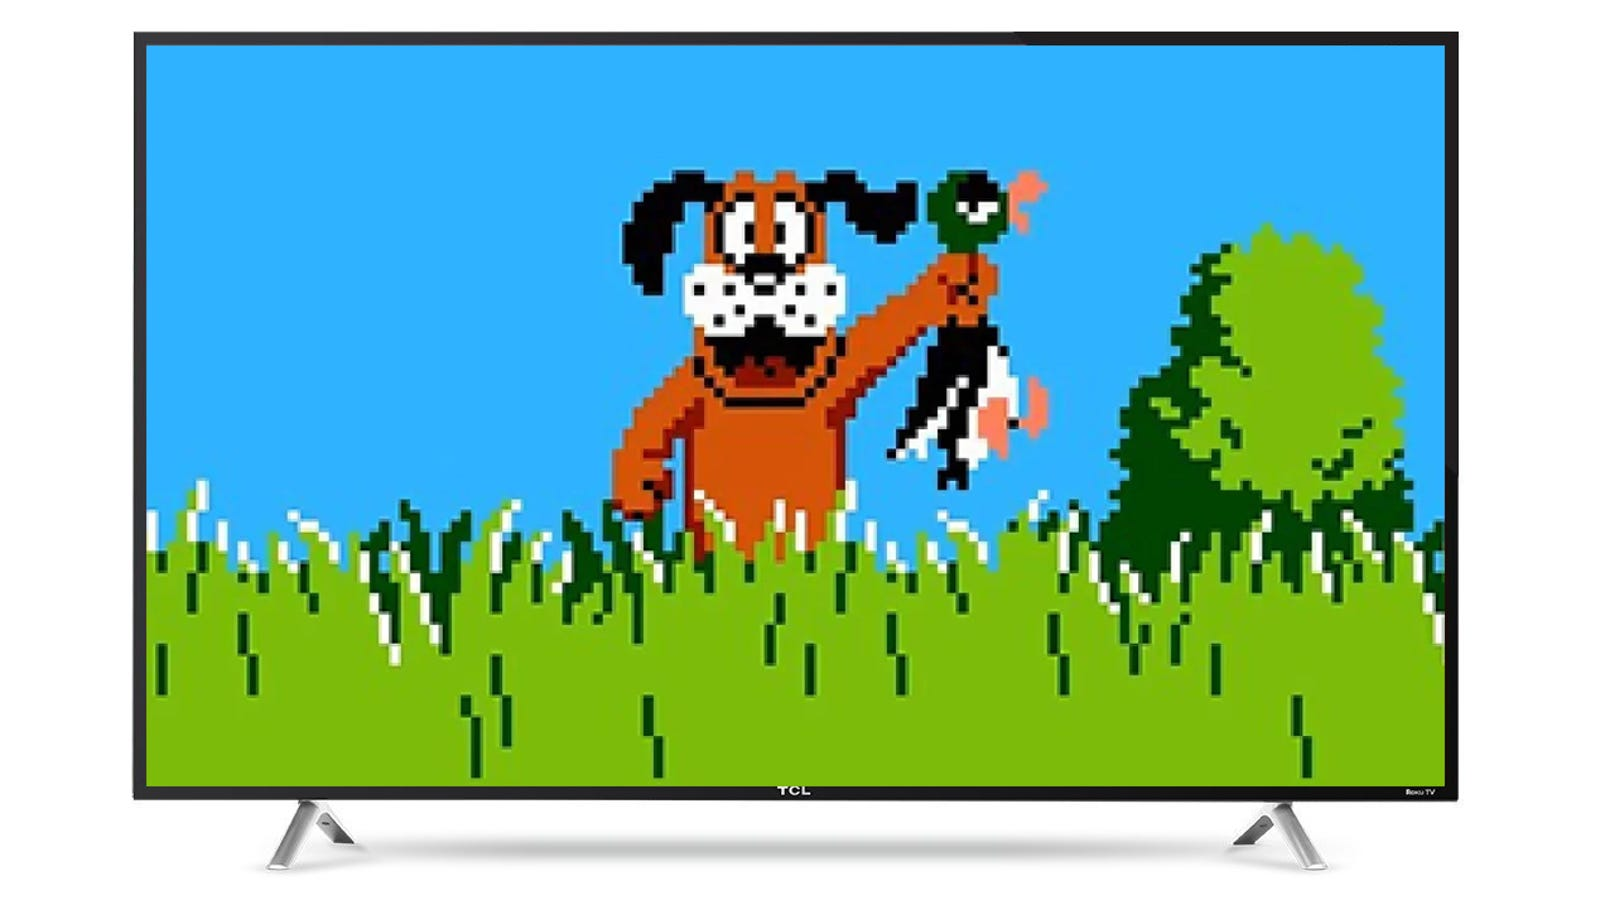 QnA VBage Soon, You'll Be Able To Play Duck Hunt On Modern TVs